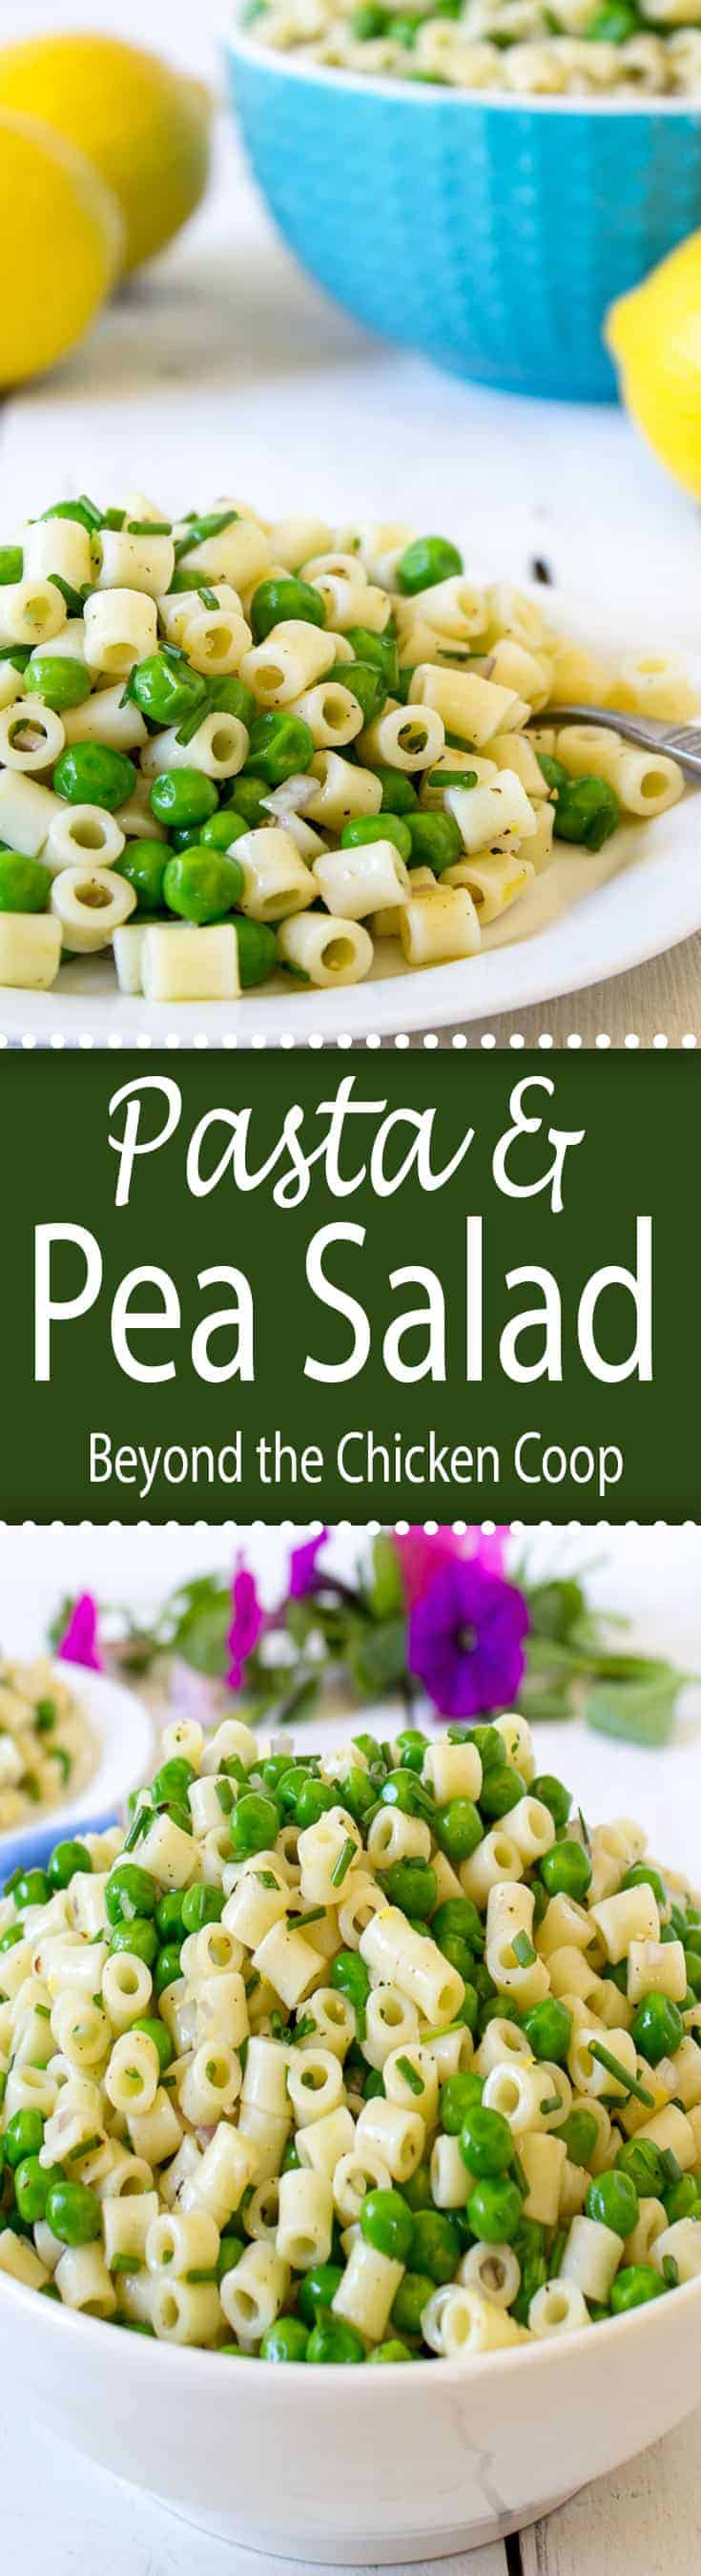 Light and delicious pasta and pea salad.